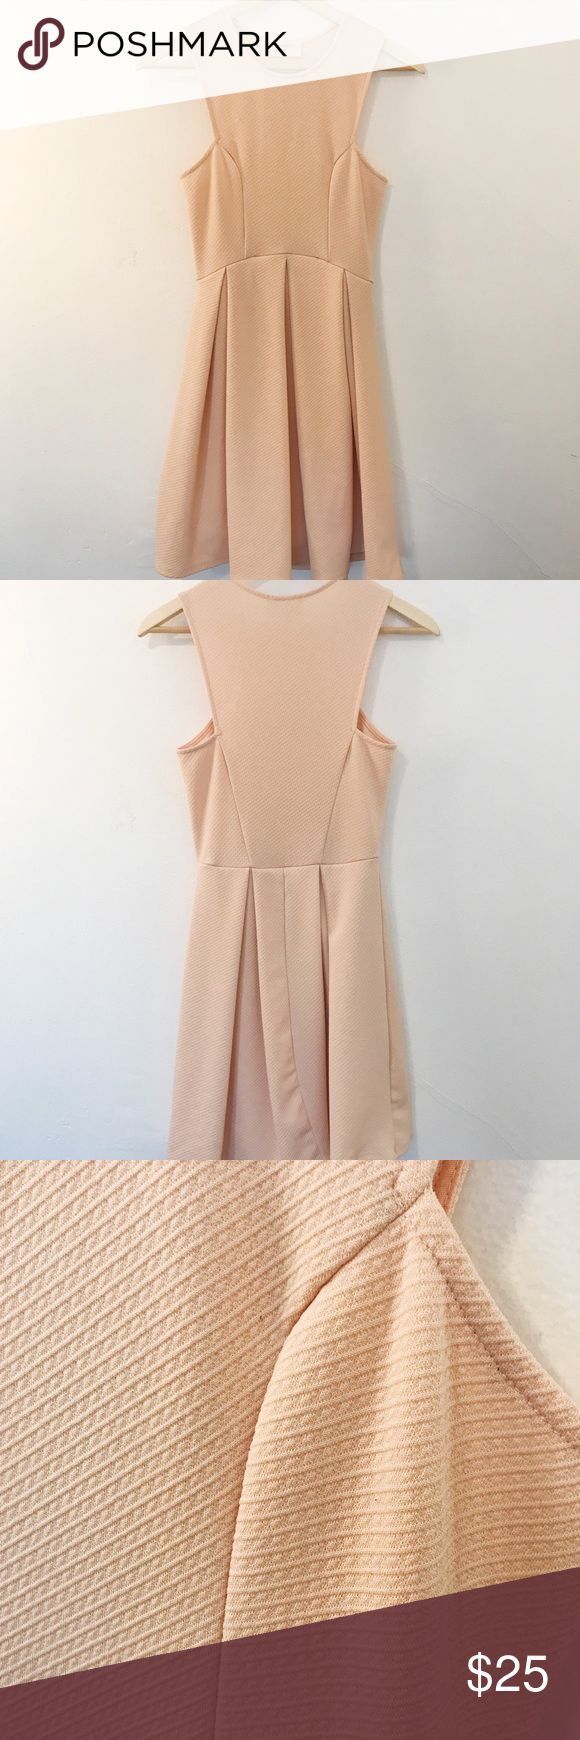 Pale pink knee length Everly dress - SMALL Pale pink textured Everly dress with cutout arm holes, size small. Great for weddings, baby showers, etc! One tiny pull on front, pictured. Everly Dresses Mini